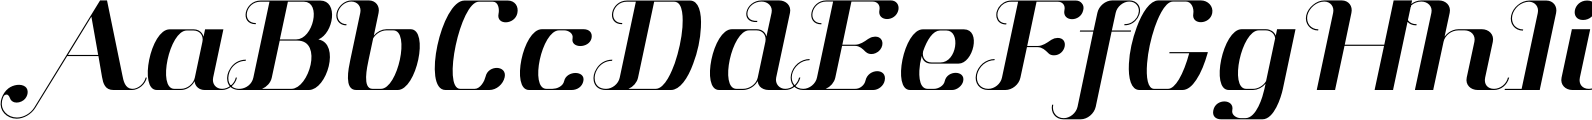 Aston Normal Italic Font